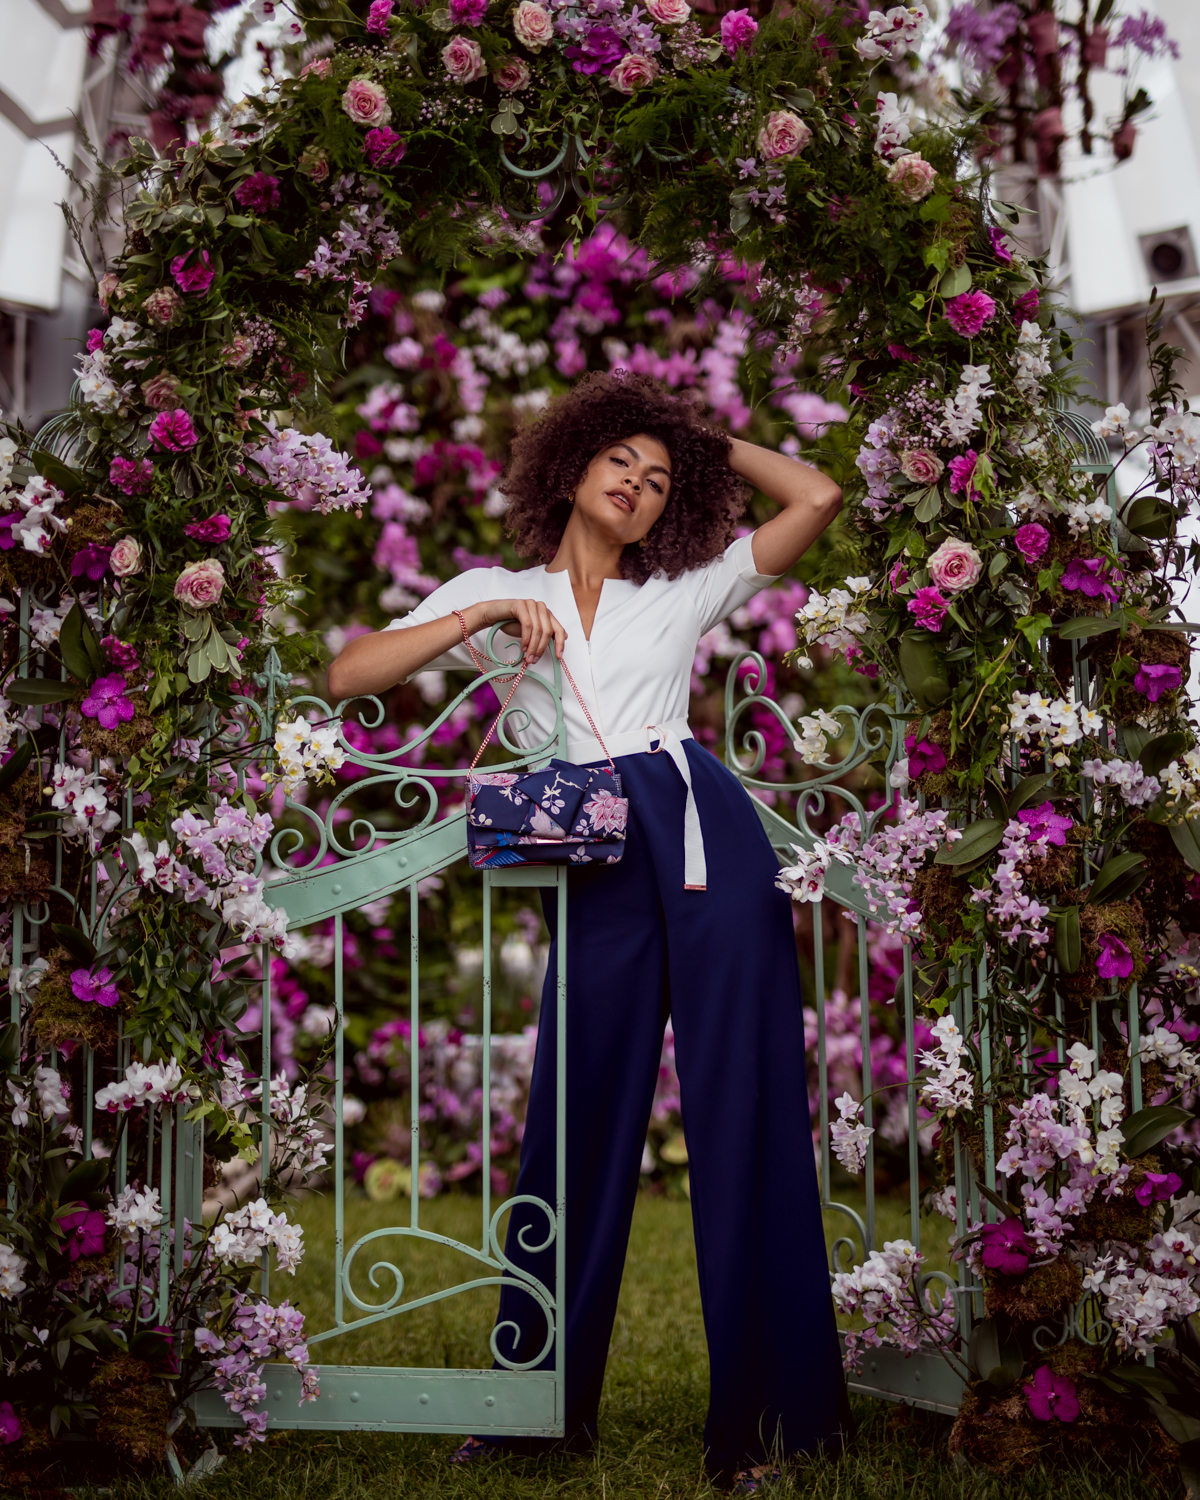 Ted Baker RHS flower show June 2018 Samio Manchester fashion blogger